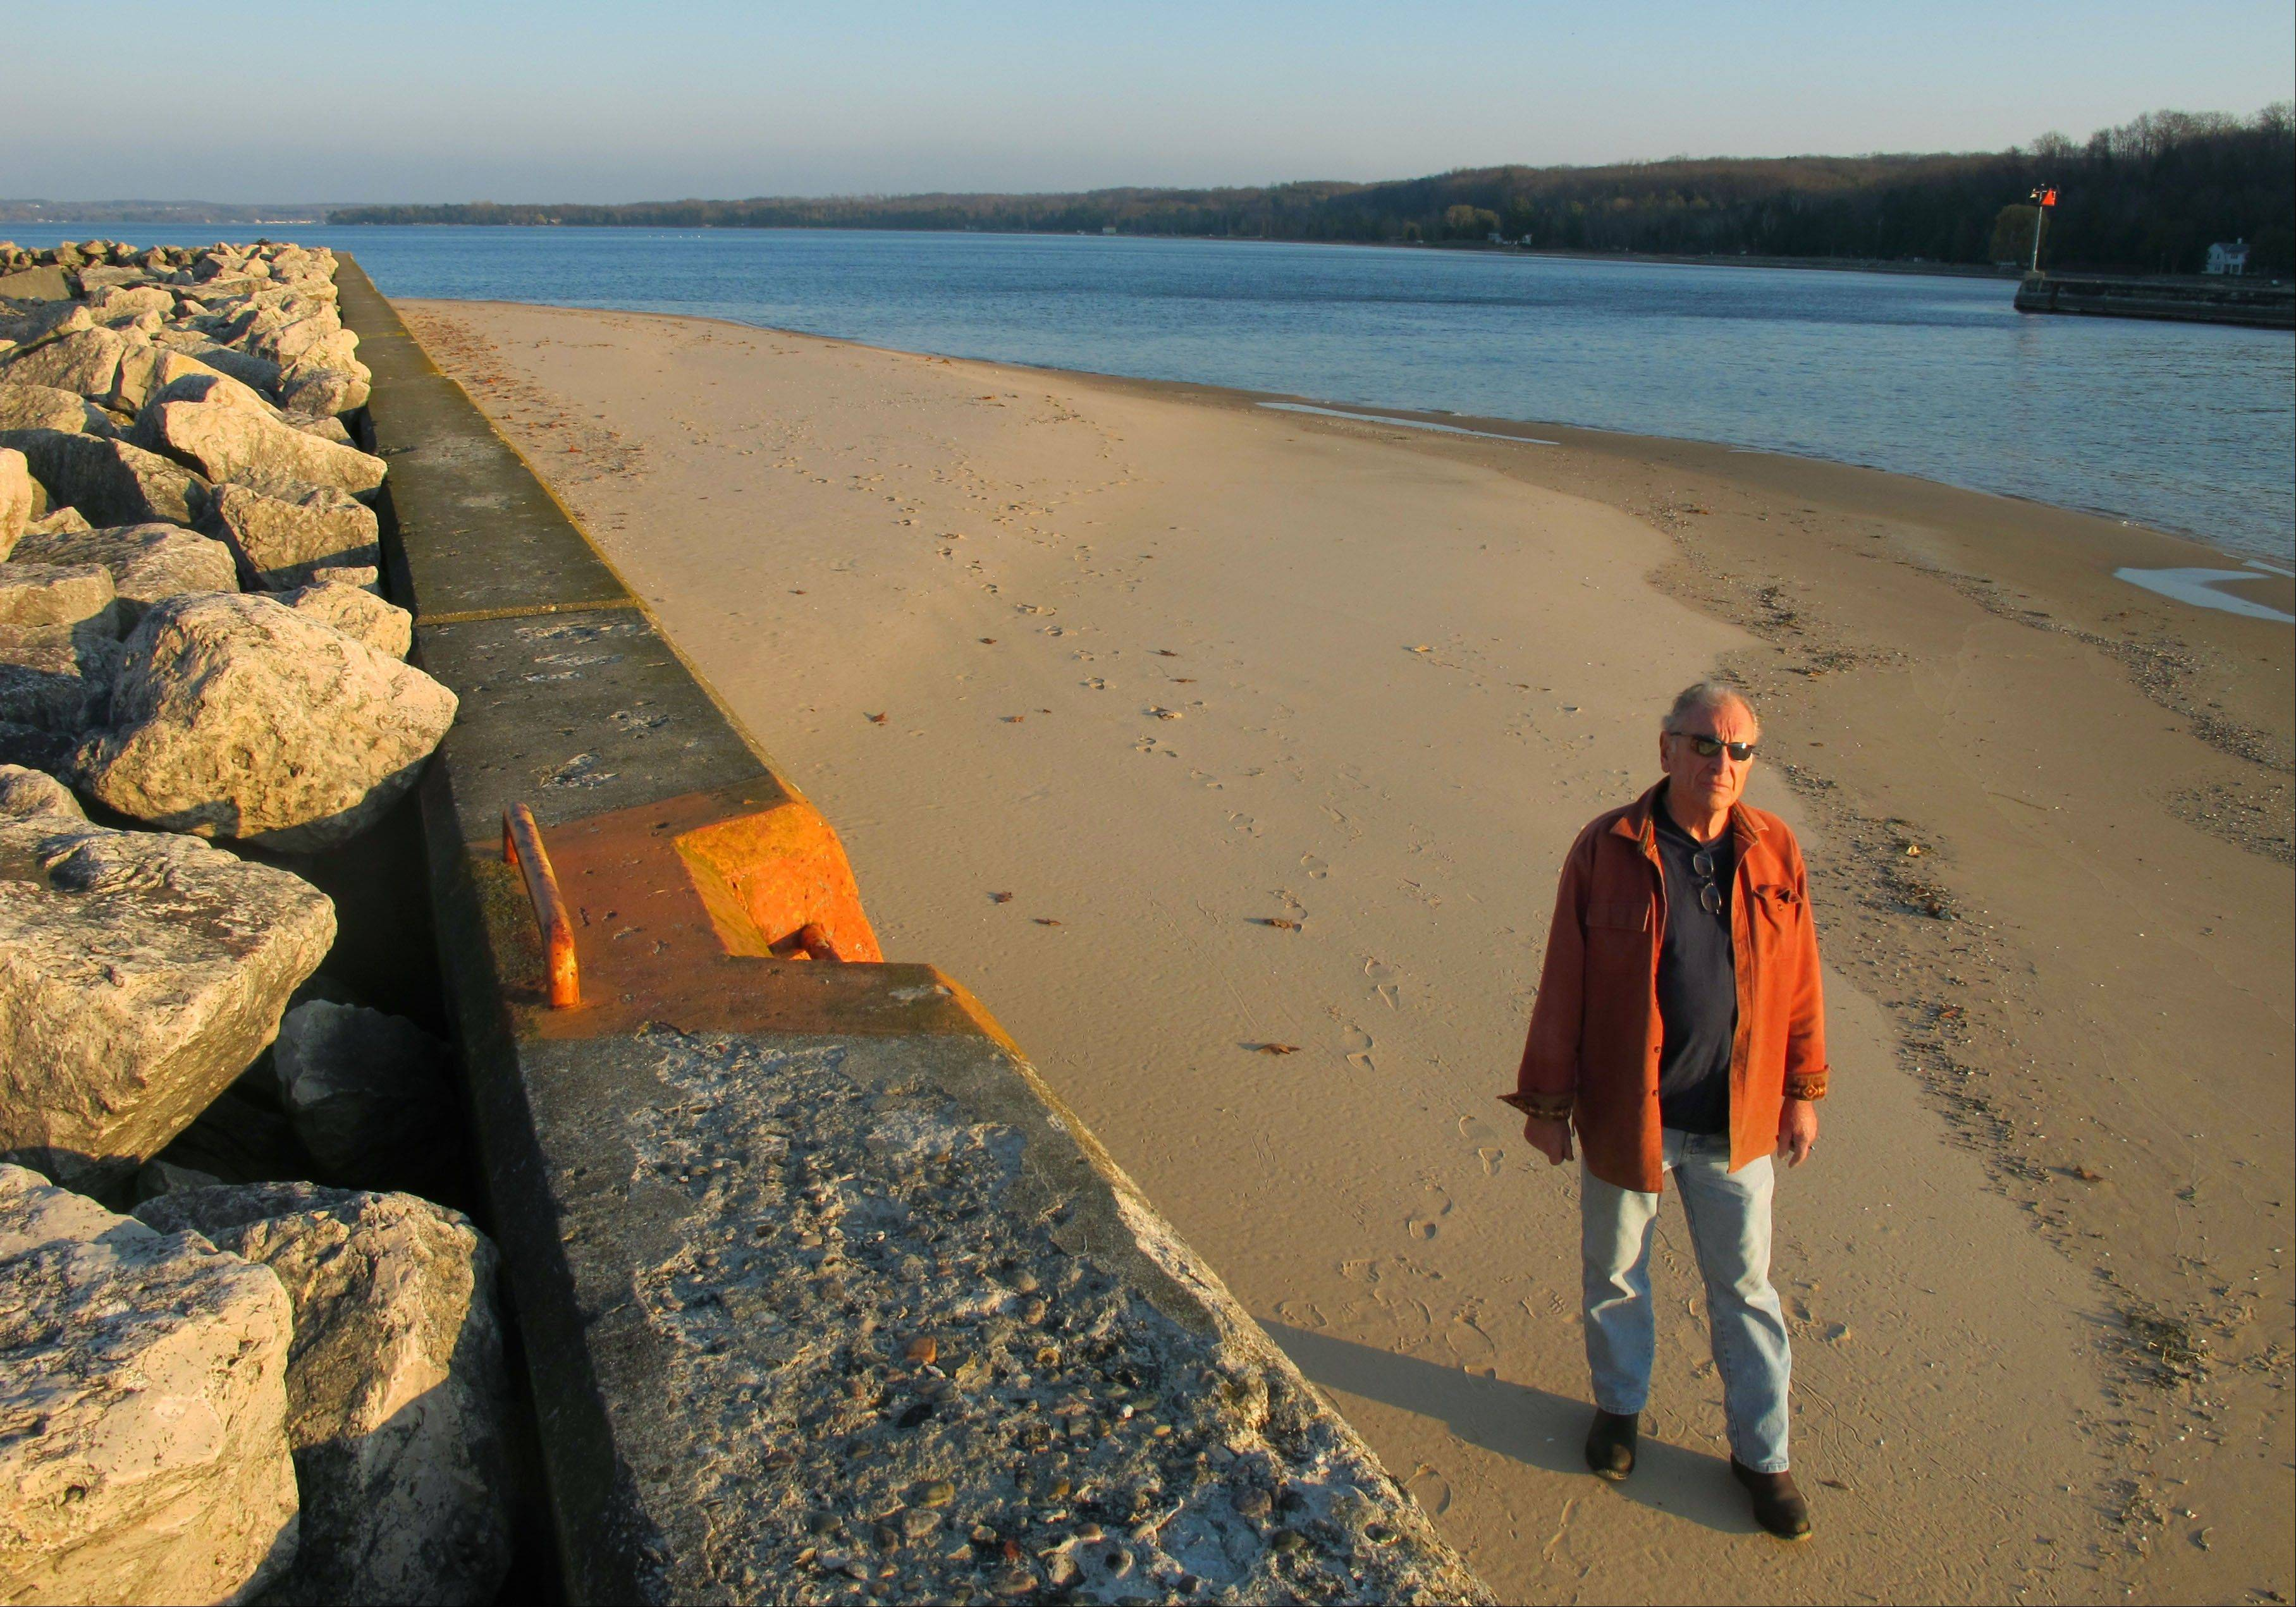 Jim Simons walks along a sand bar, exposed by low water levels, on the Portage Lake channel that leads to Lake Michigan at Onekama, Mich.